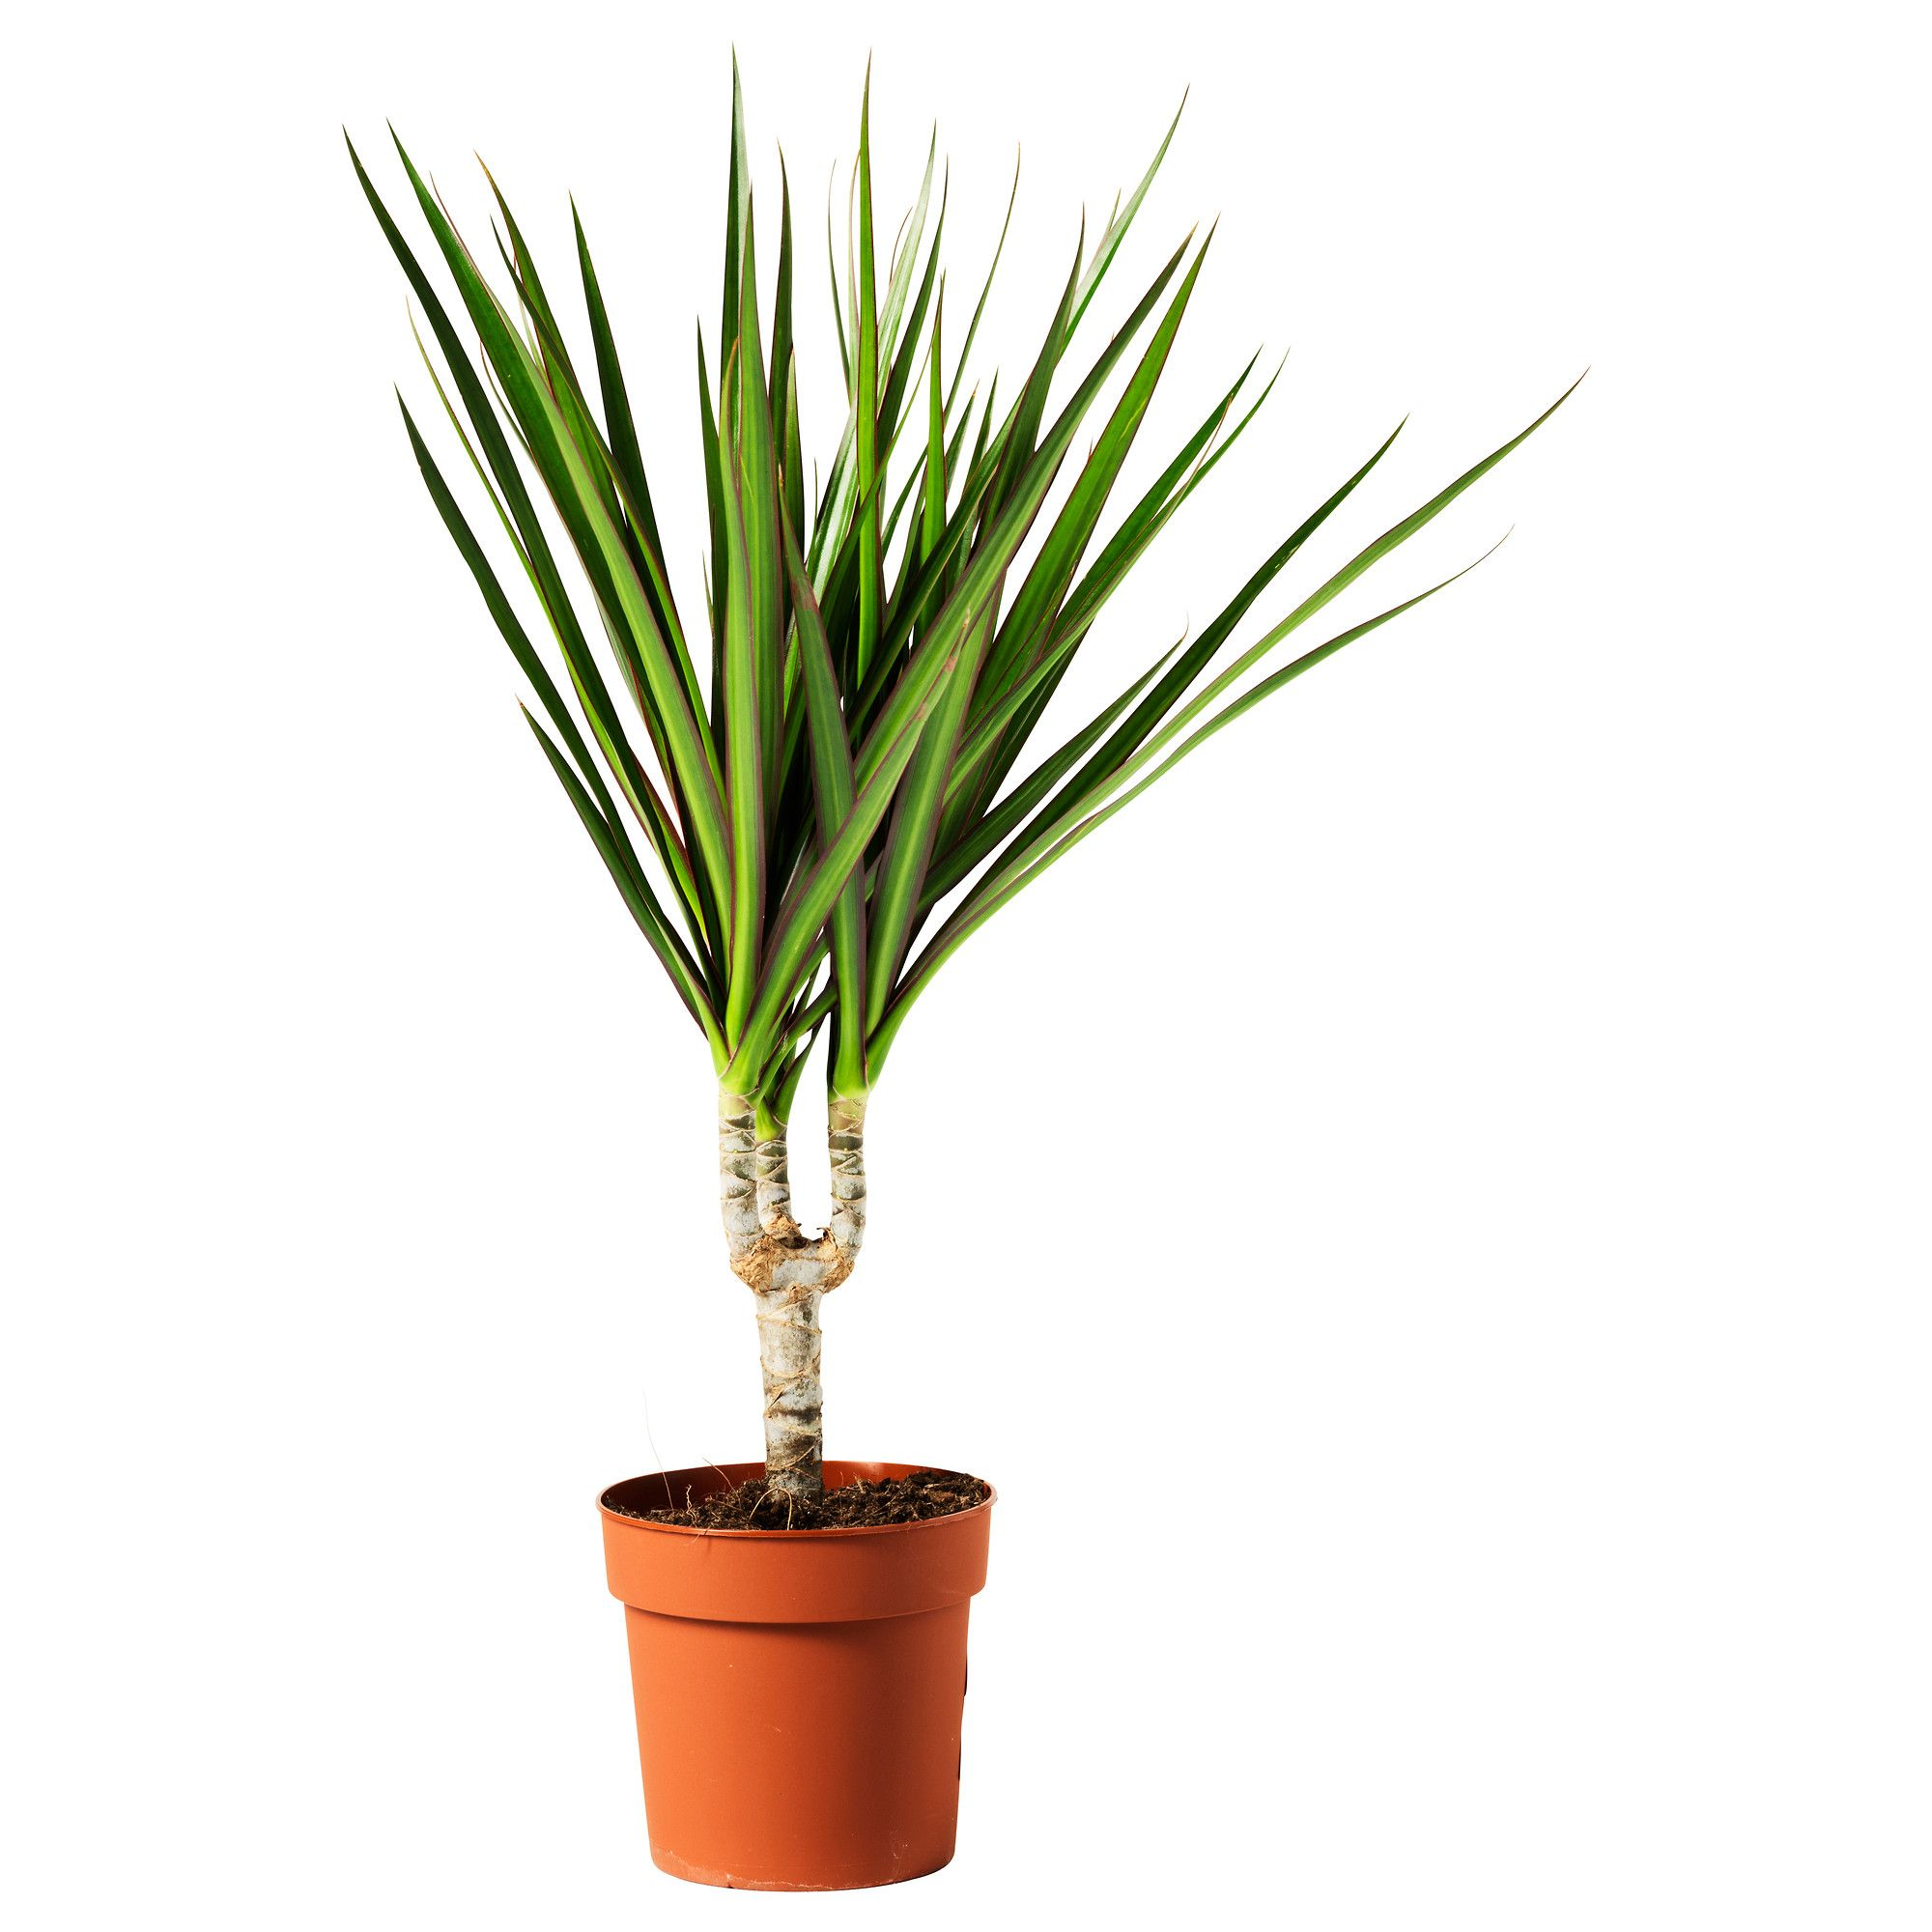 dracaena marginata plante en pot dragonnier de madagascar 1 tige plantes en pots pots et ikea. Black Bedroom Furniture Sets. Home Design Ideas